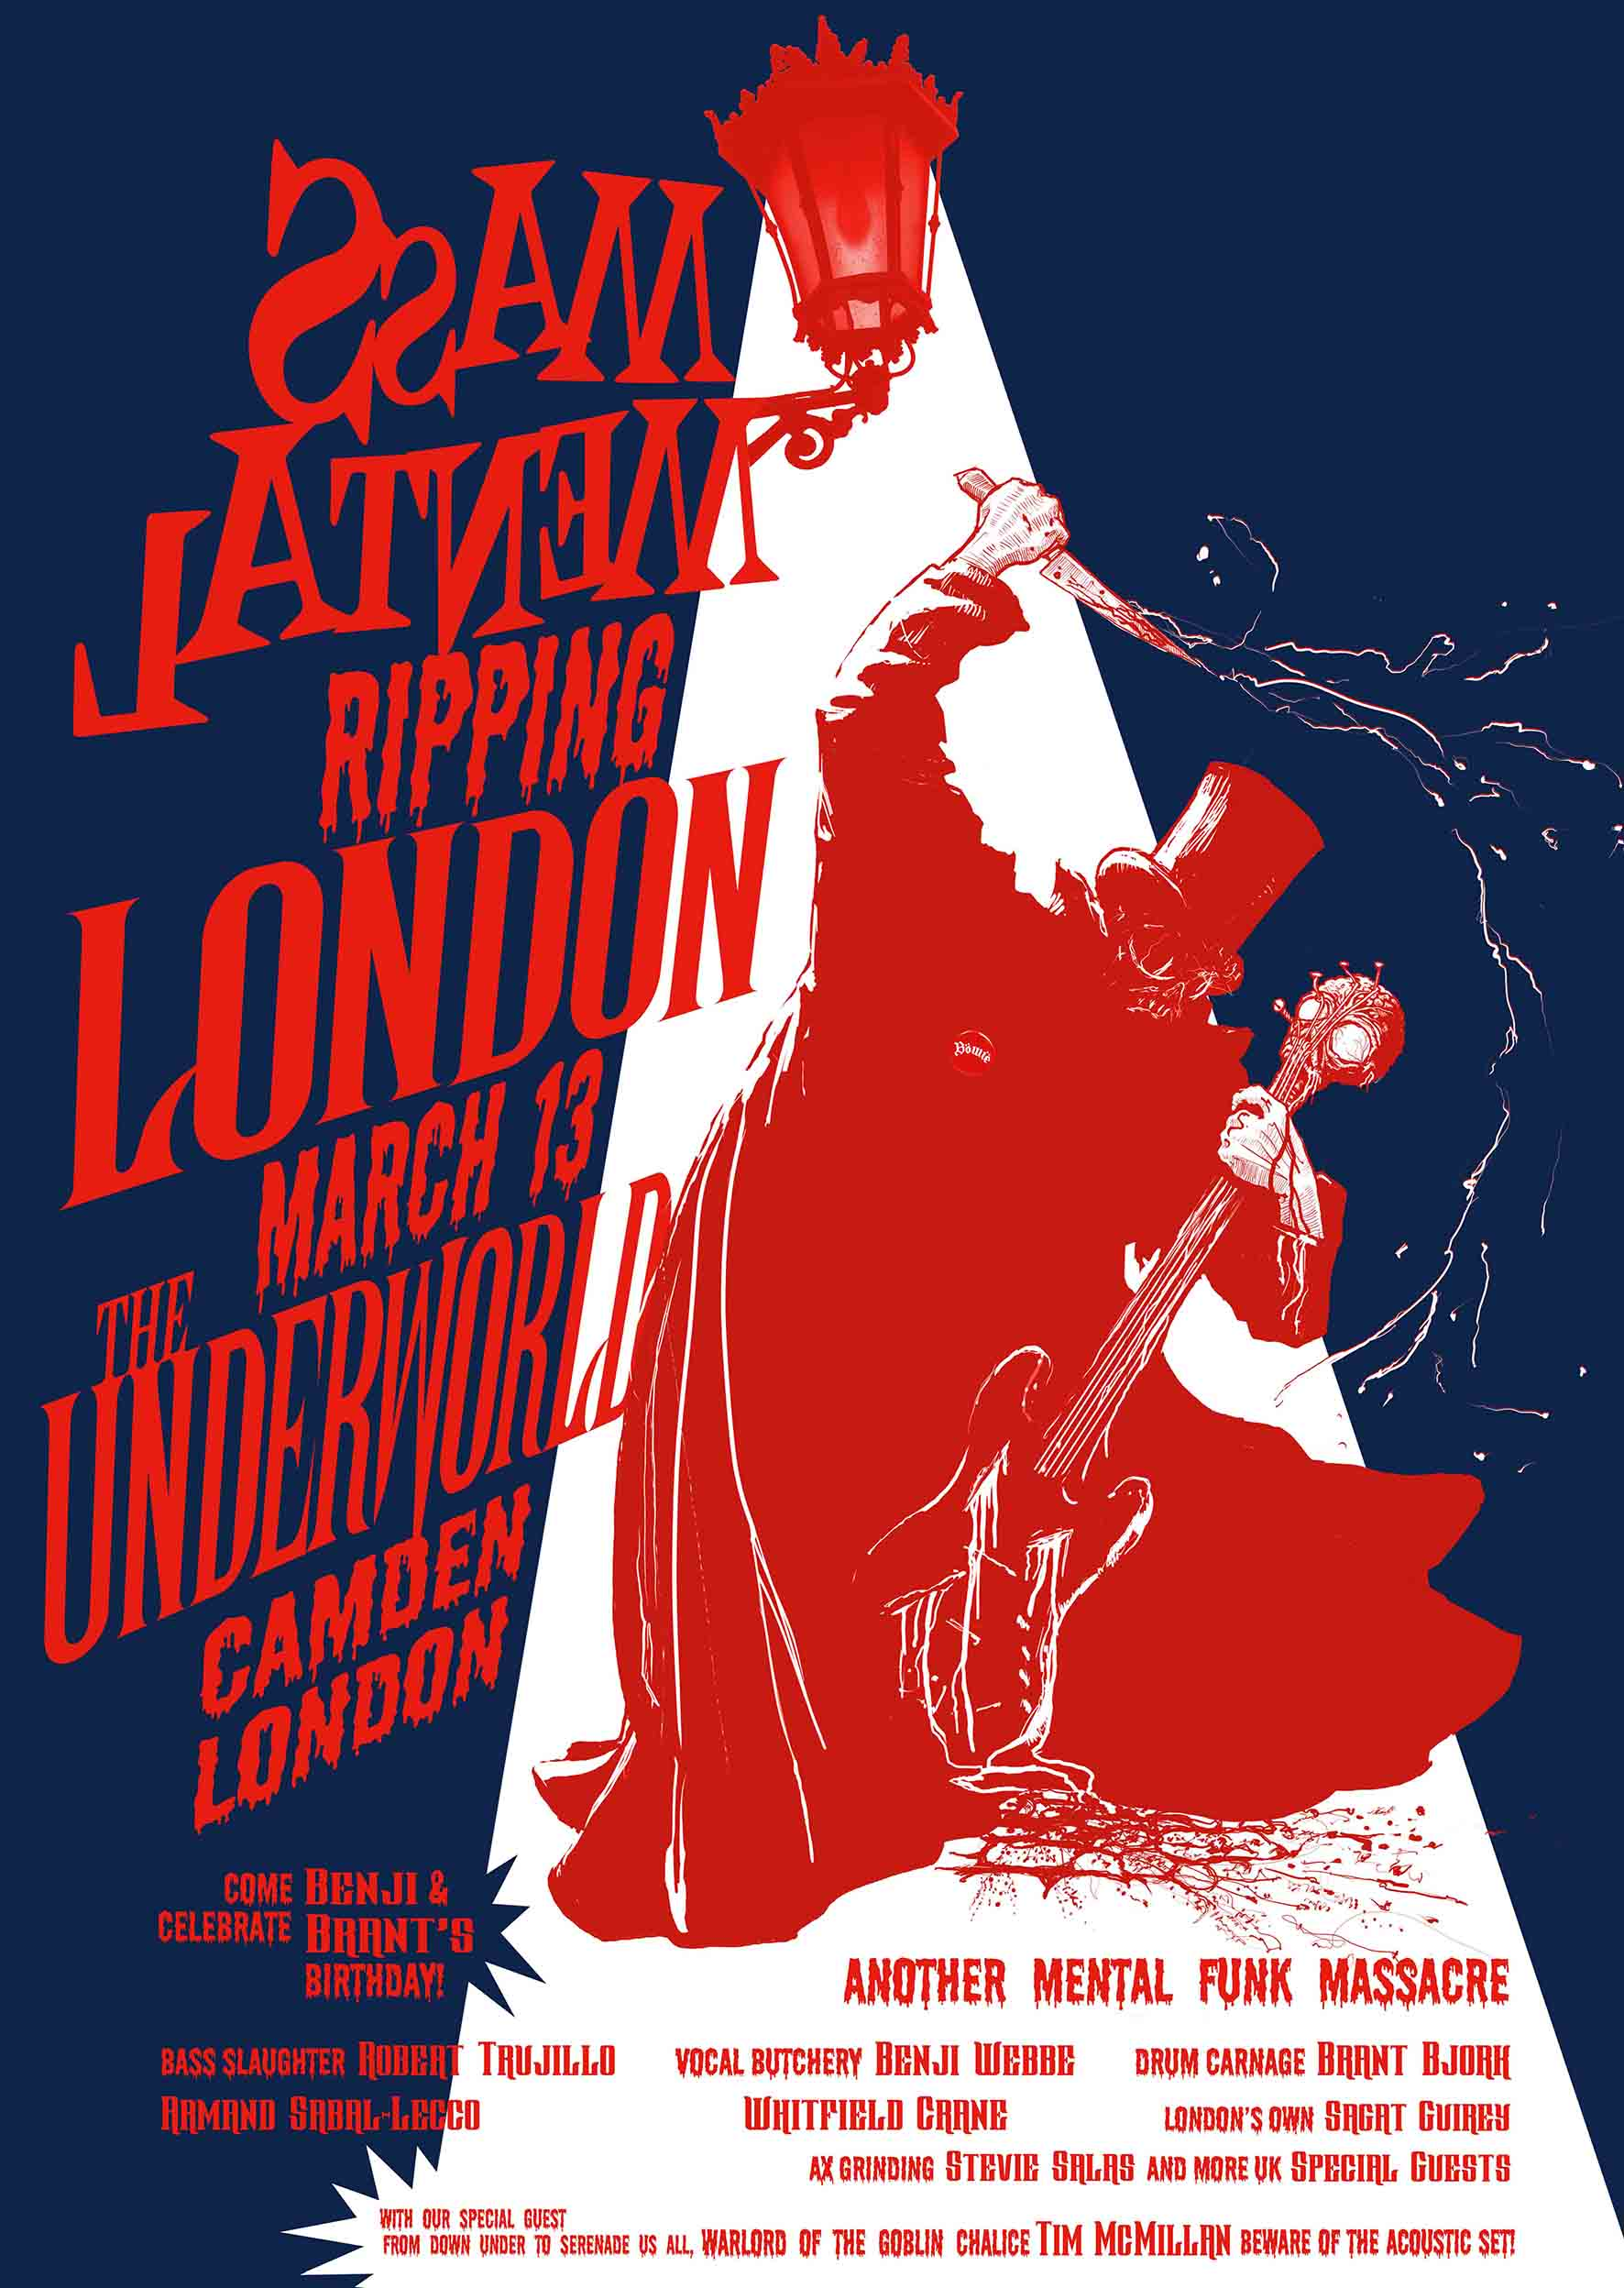 Motörhead And Metallica Members Team Up For London Show